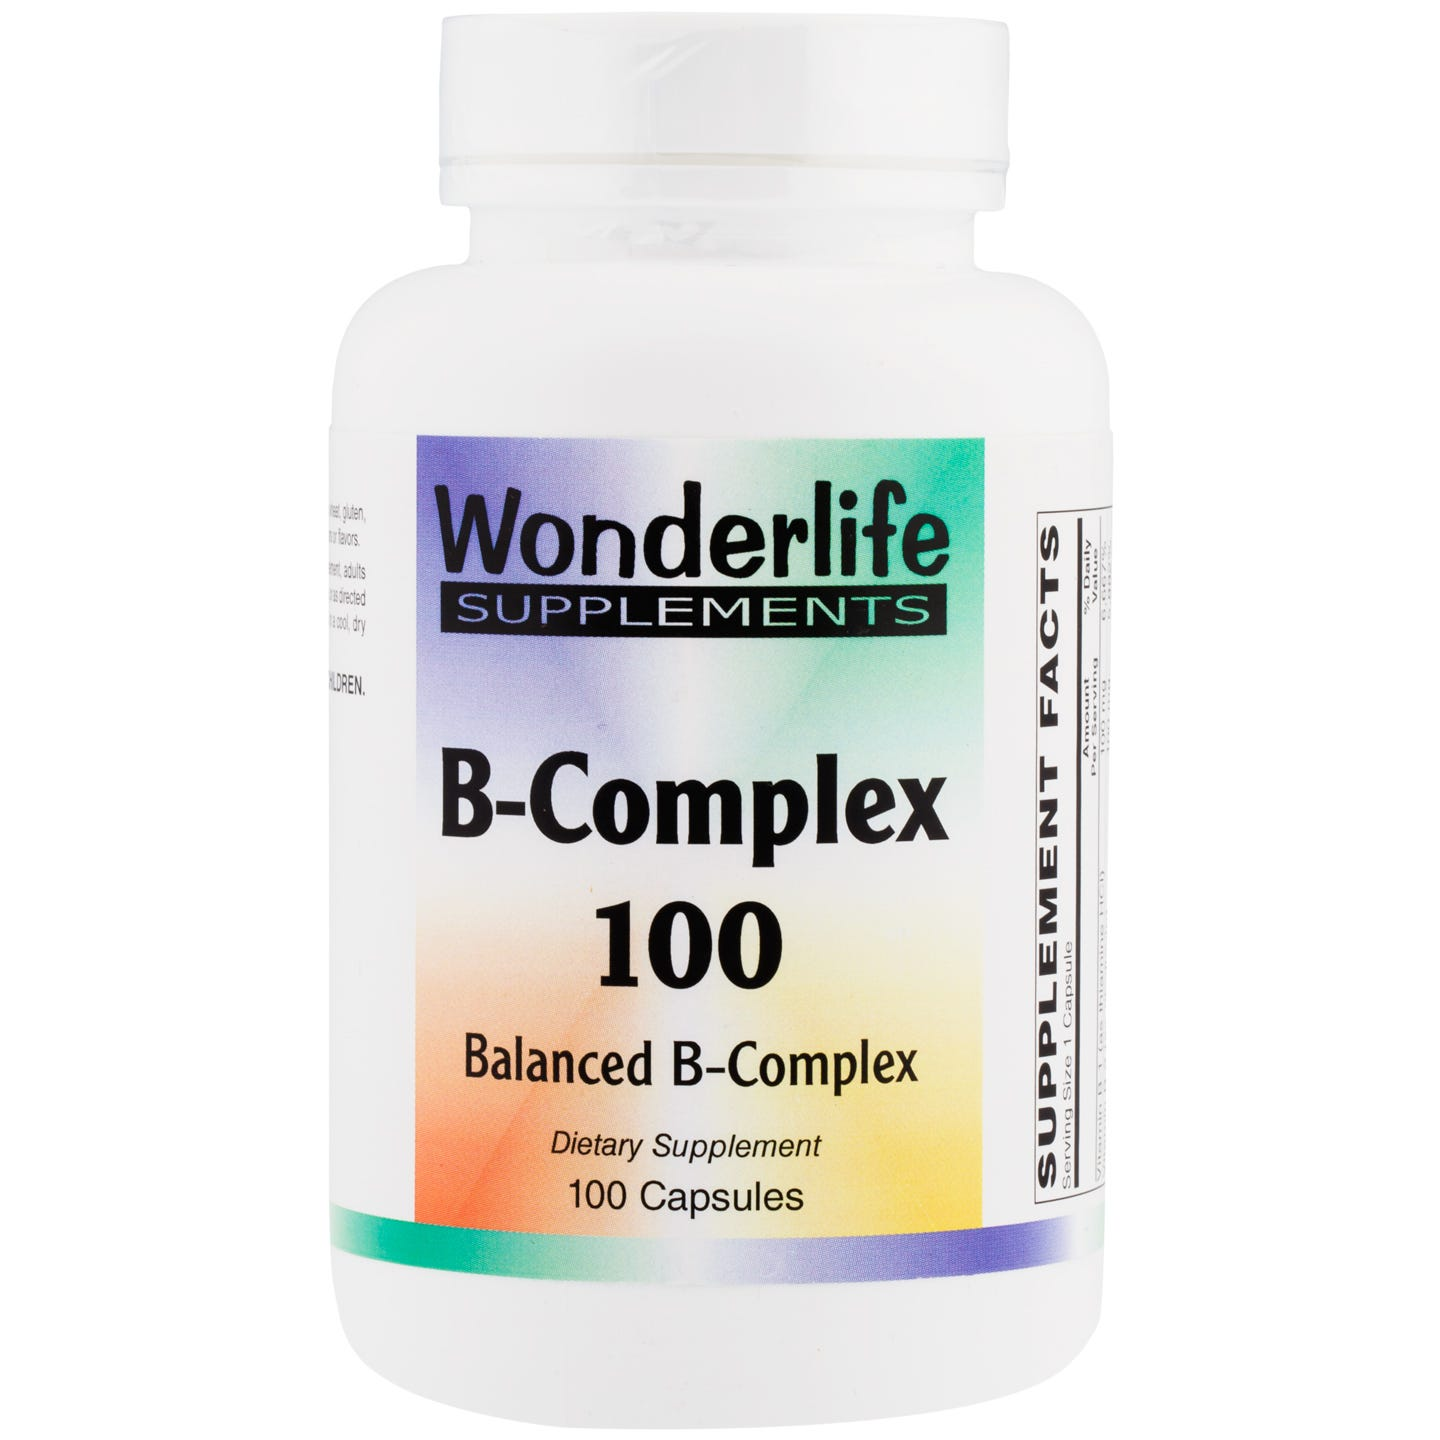 B-Complex 100 (100 Capsules), Wonderlife - Rapid Diet Weight Loss Products Shop